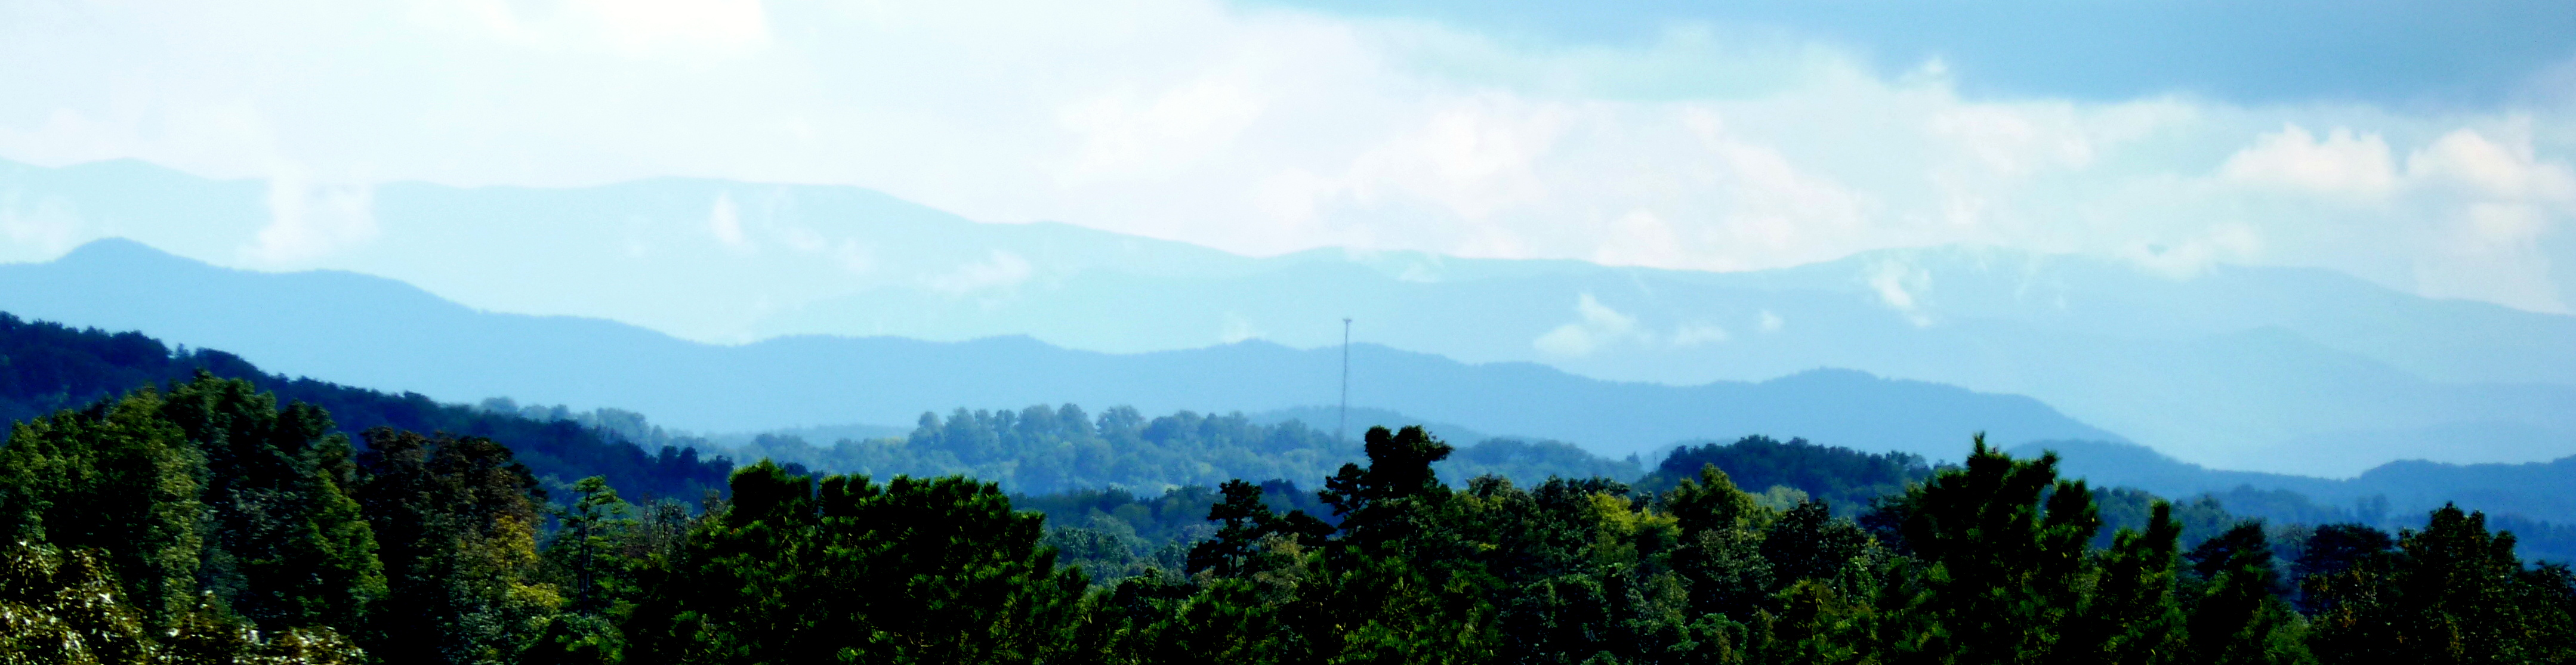 The Smokies from near Taig an Drama